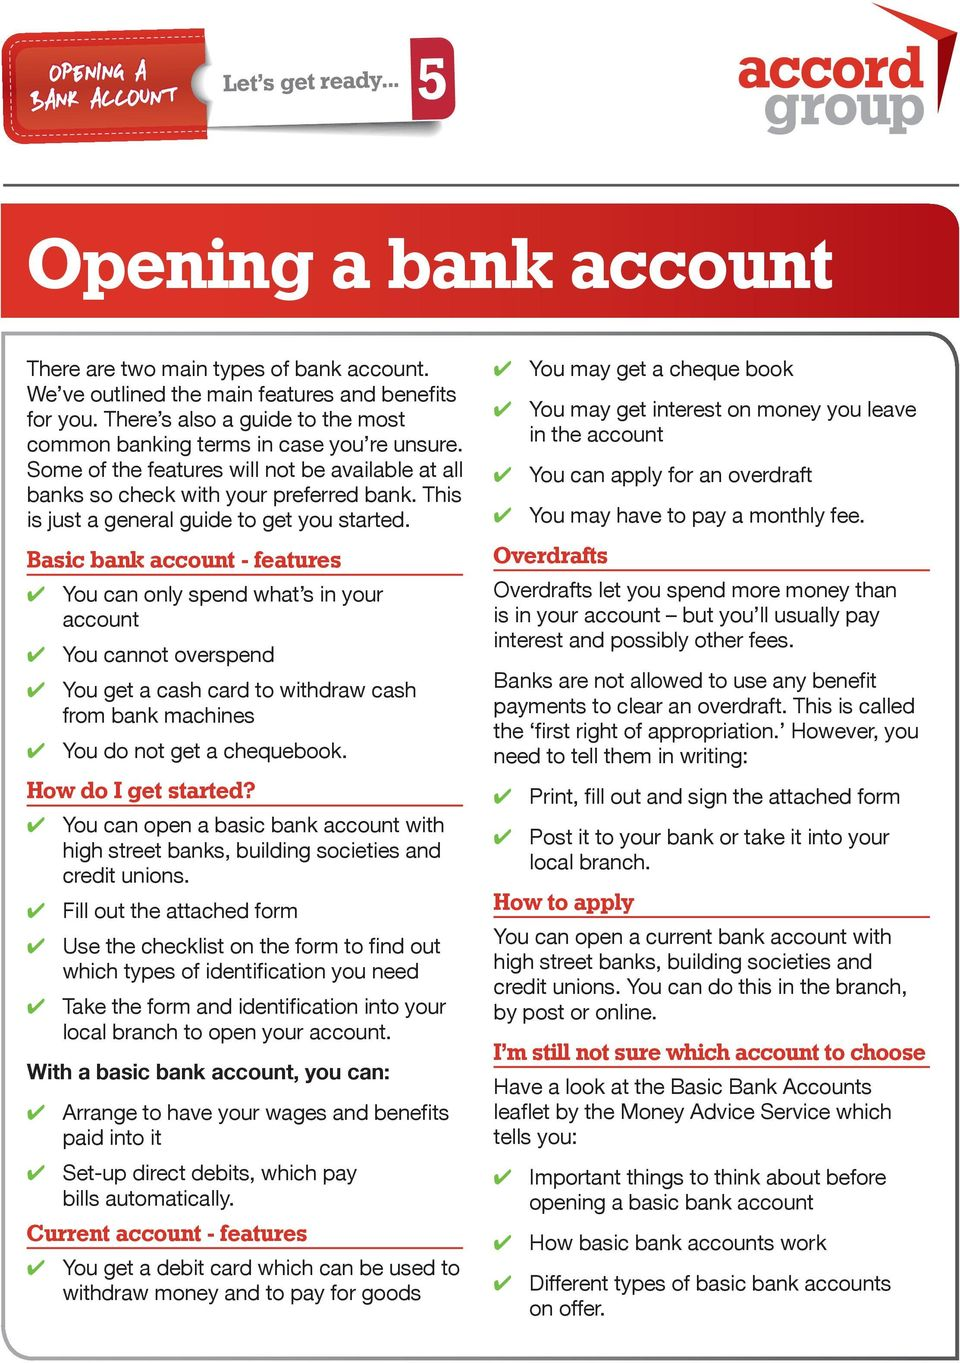 Basic bank account - features You can only spend what s in your account You cannot overspend You get a cash card to withdraw cash from bank machines You do not get a chequebook. How do I get started?